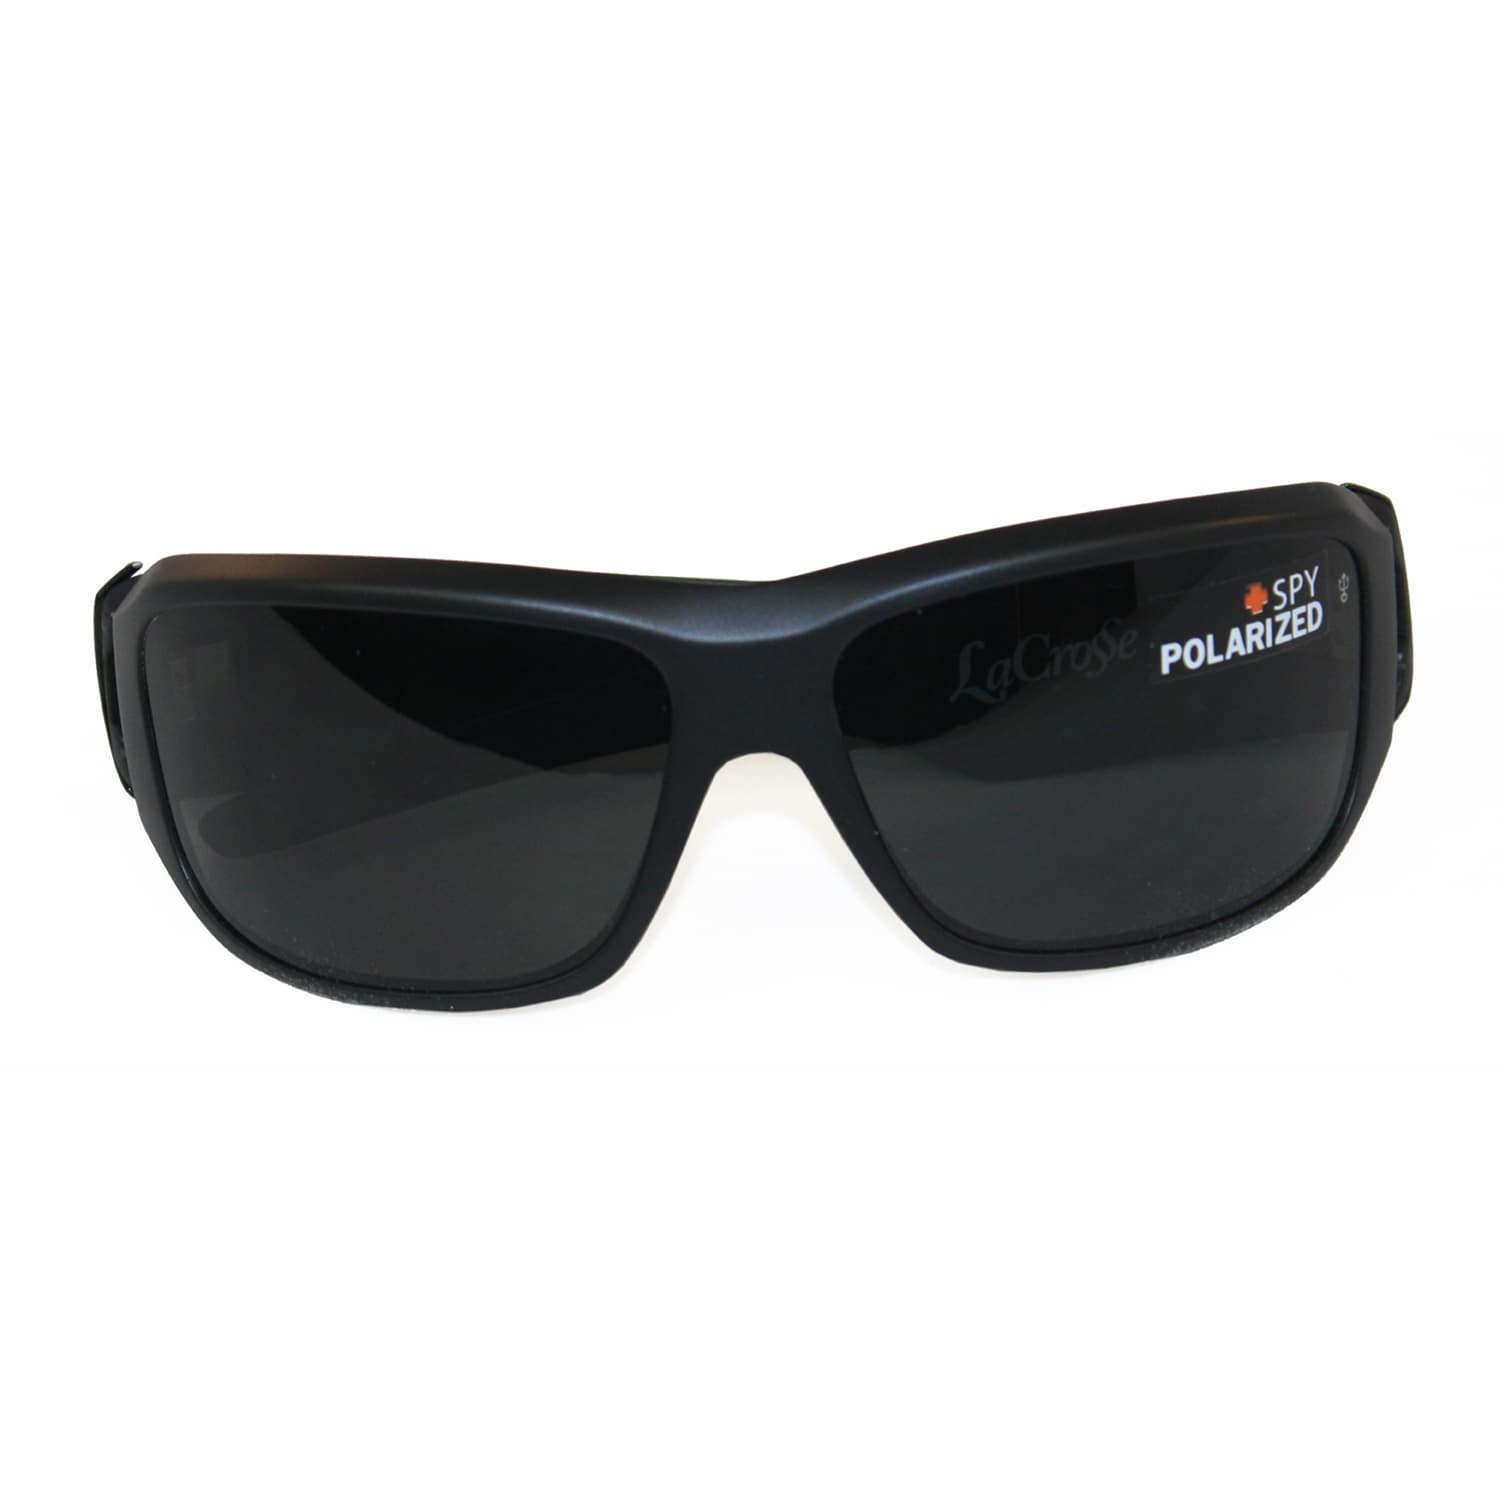 ad1364e268 Shop Spy Optic Men s  Lacrosse  Matte Black Polarized Sunglasses - Free  Shipping Today - Overstock - 7639661